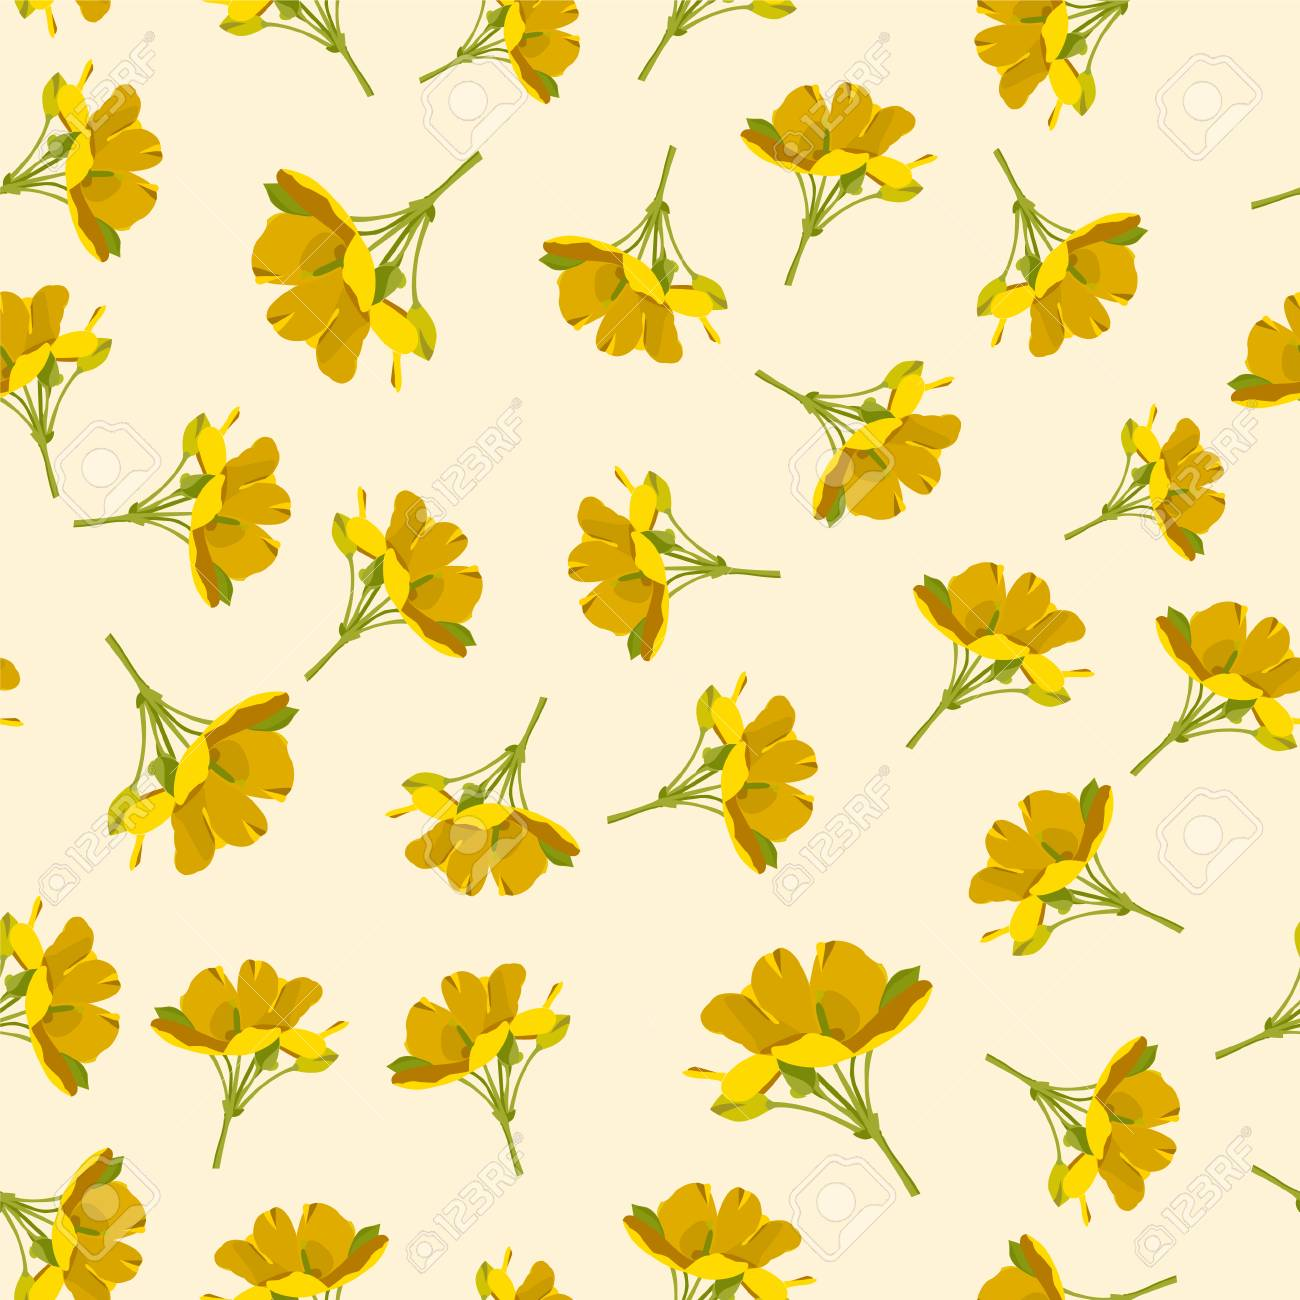 seamless cute floral vector pattern background yellow flower royalty free cliparts vectors and stock illustration image 104184861 seamless cute floral vector pattern background yellow flower